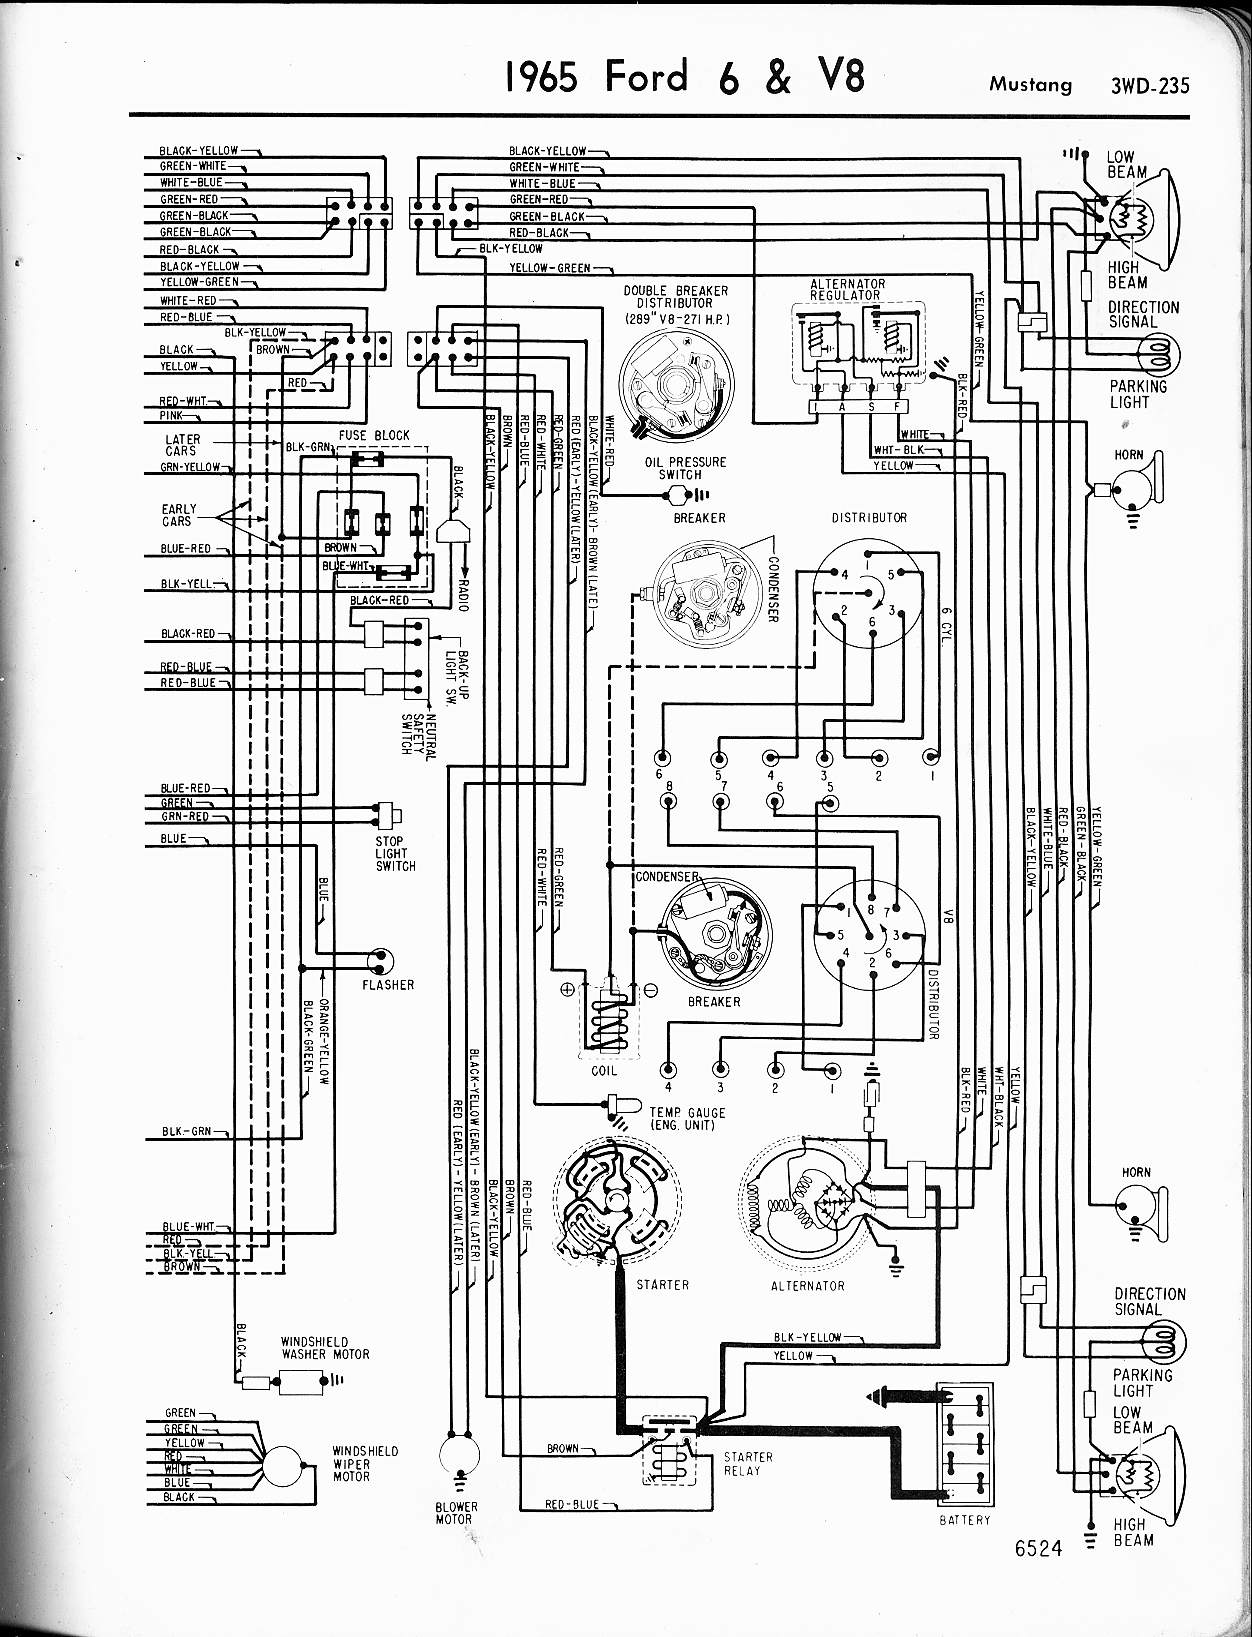 Schematics h as well Volvo Penta Sensor Location moreover 1976 Corvette Vacuum Hose Diagram also 1966 Mustang Wiring Diagrams furthermore 390mo Need Fuse Box Diagram Identification Considering Someone. on 1969 ford fuse box diagram